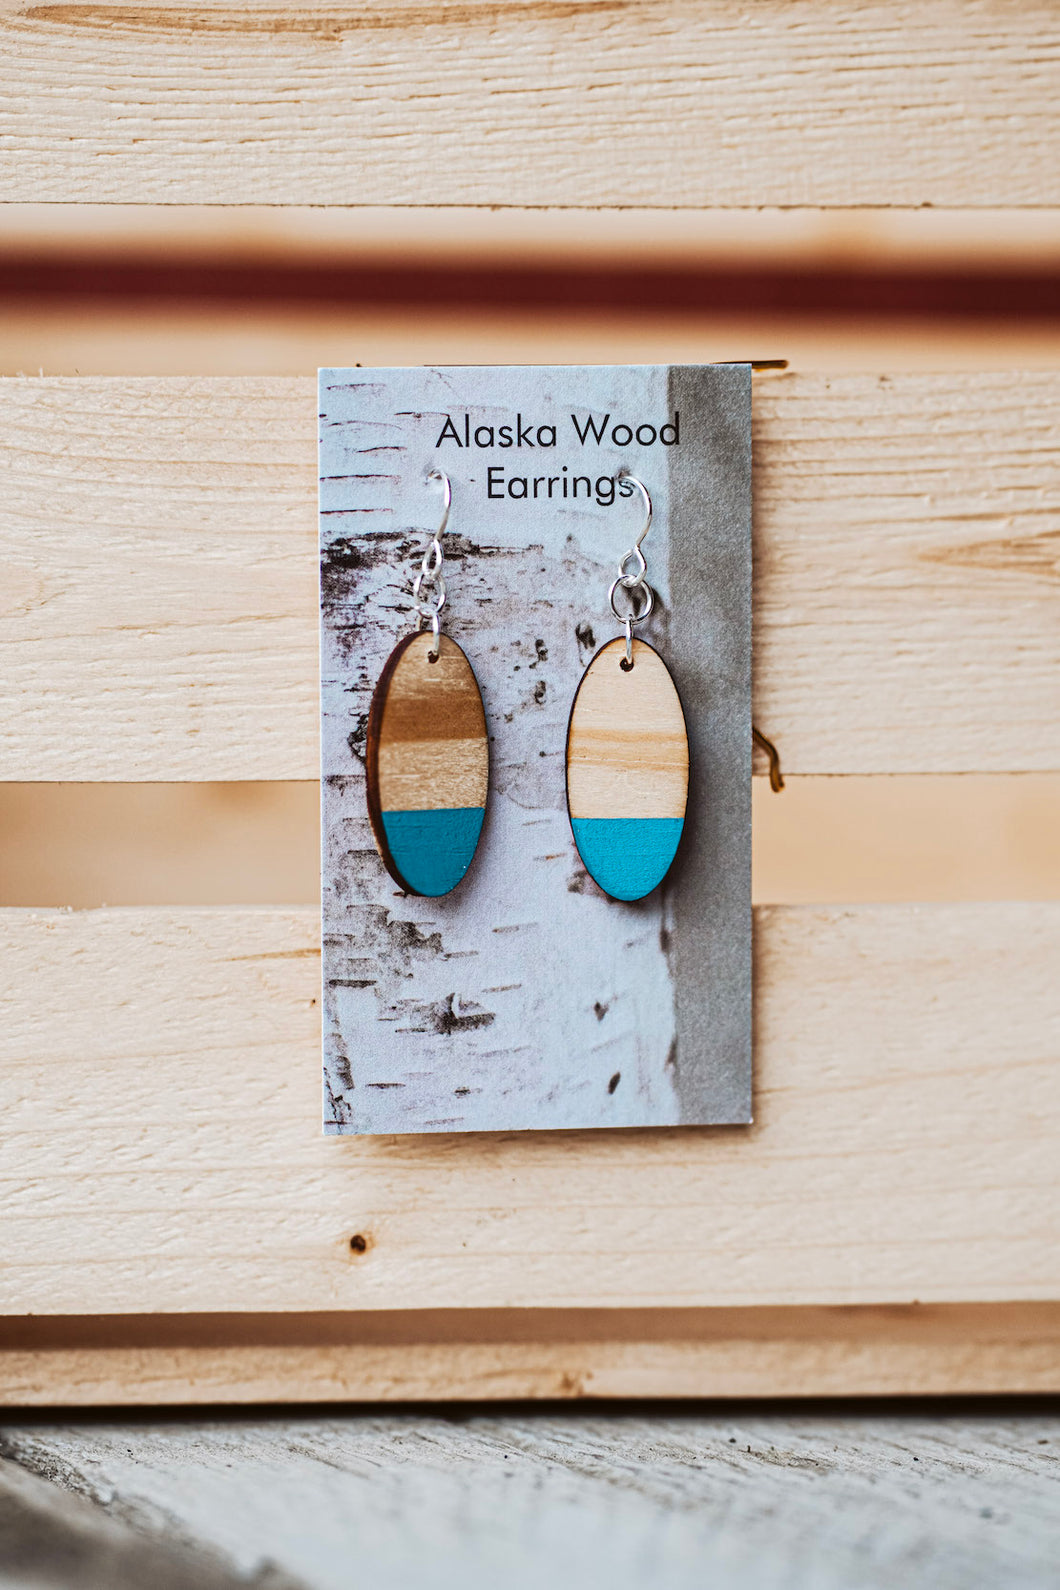 Alaska Wood Earrings Sterling Silver Teal Oval Earrings